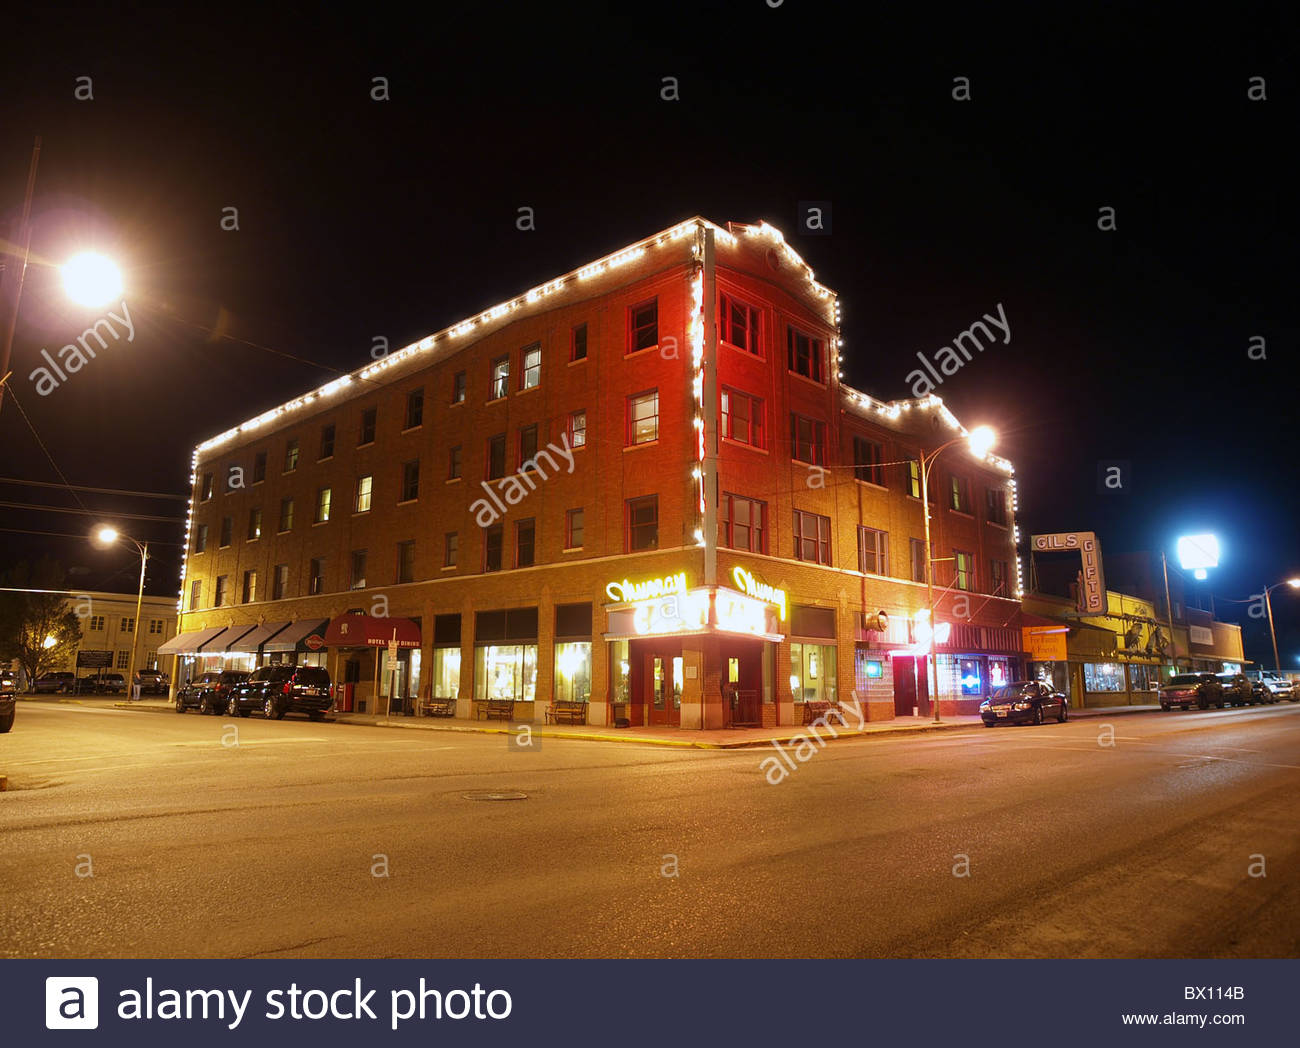 Famous Murray hotel in Livingston Montana. Rustic western living at its best. - Stock Image